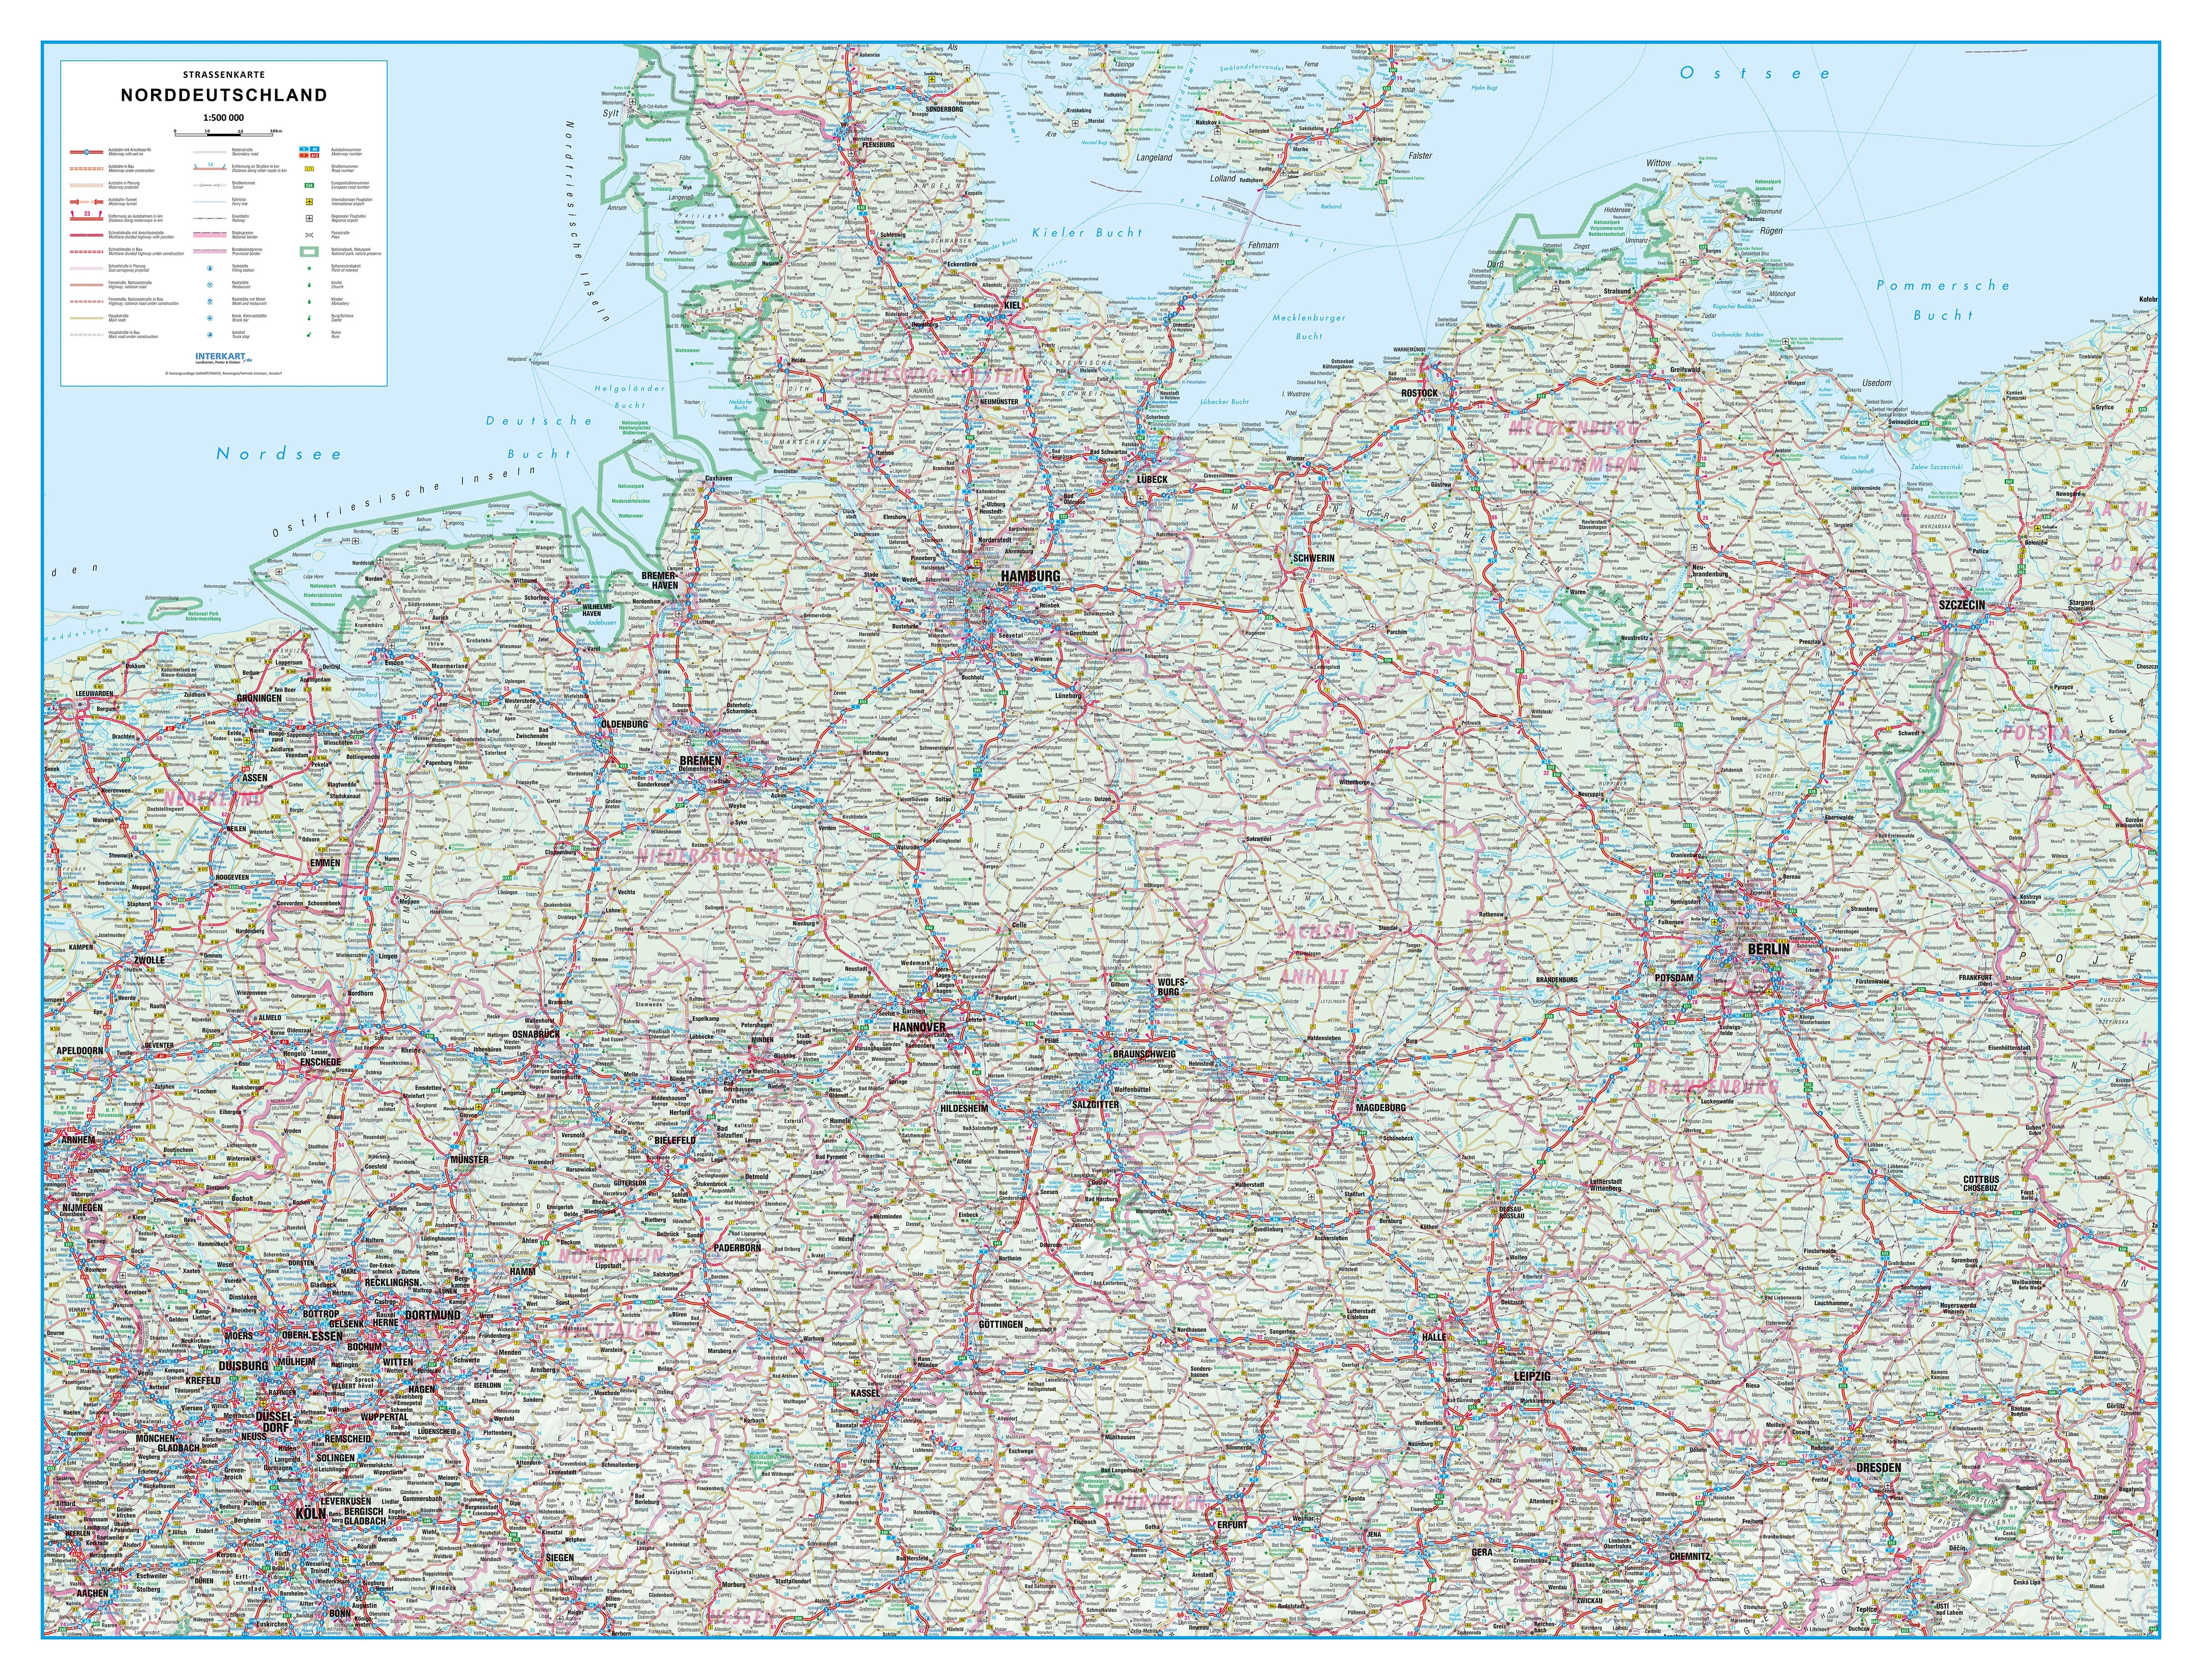 Road Map North Germany 135 x 103cm - Germany Wall Maps - Europe ...